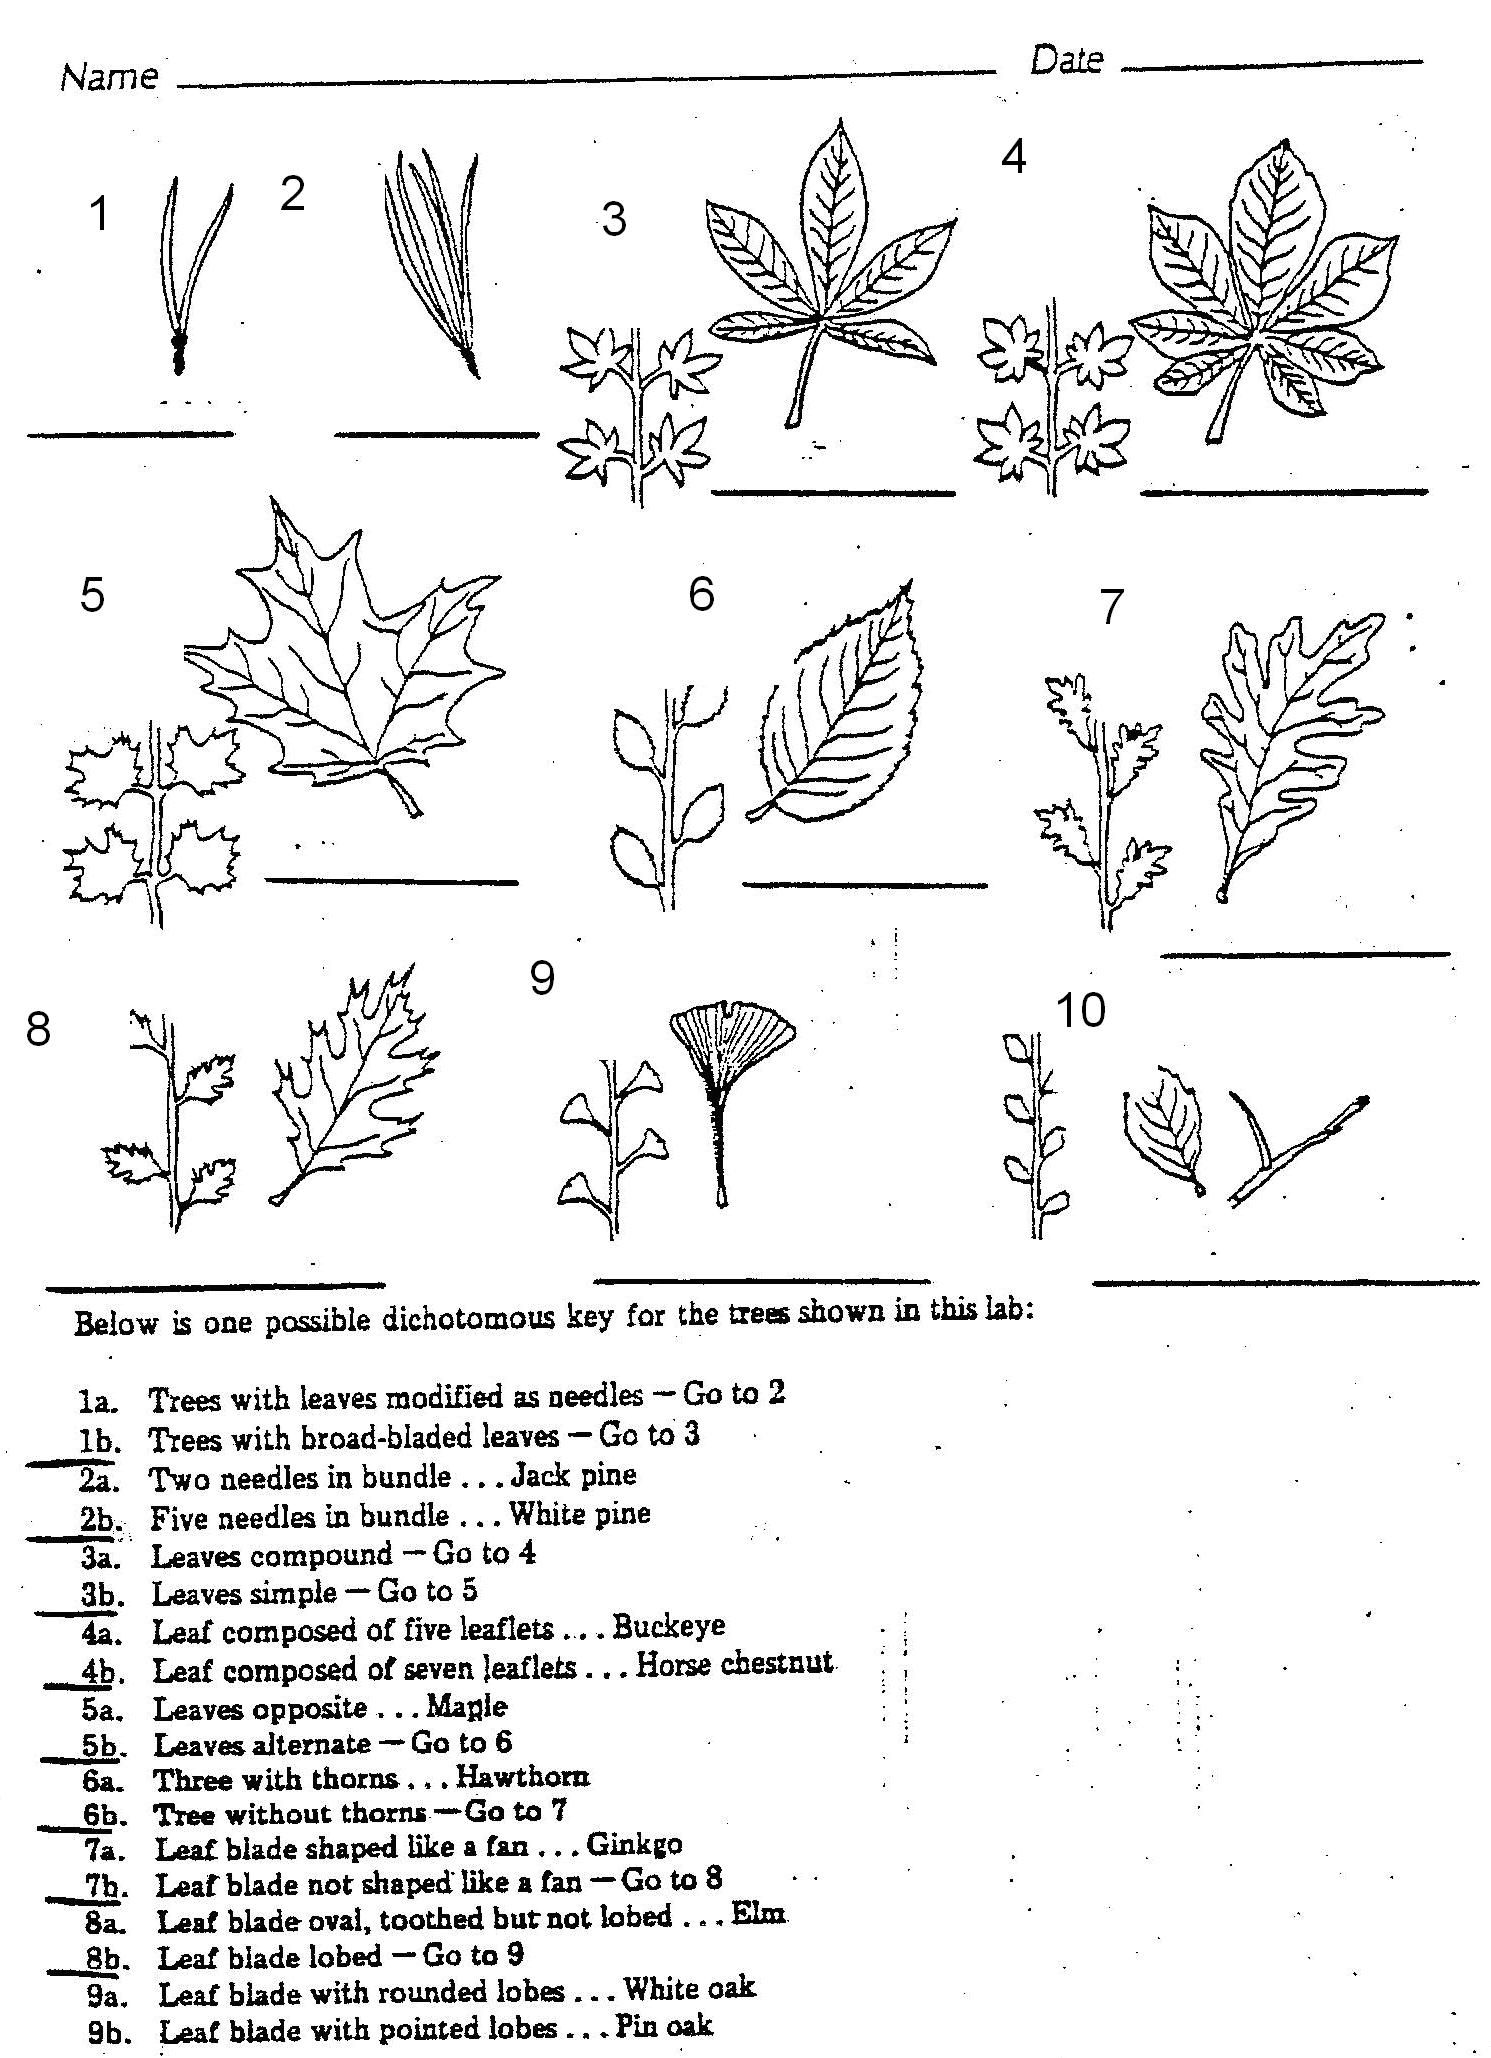 Plants 7 Leaf Tree Id Key Review Dichotomous Keys Activity